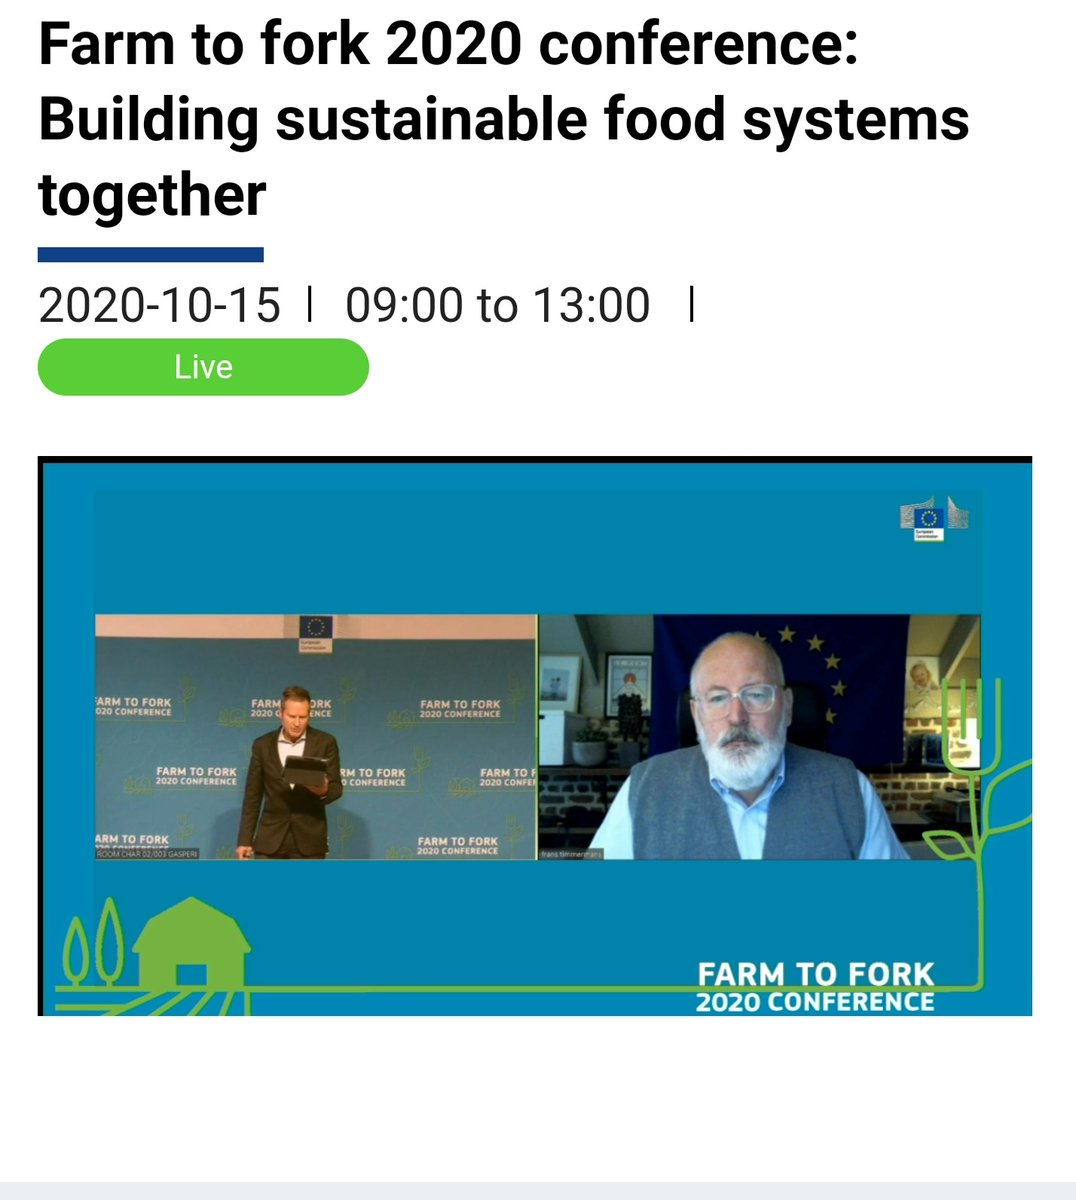 👏 @TimmermansEU crystal clear on closing the gap between #urban & #rural areas. Sustainability depends on this interoperability.  #ConsumerCoops are prime enablers of #rural #revitalisation due to our #distinct #model. #local #sustainable #PeopleFirst  #EUGreenDeal #EUFarm2Fork https://t.co/DgfjYdOria